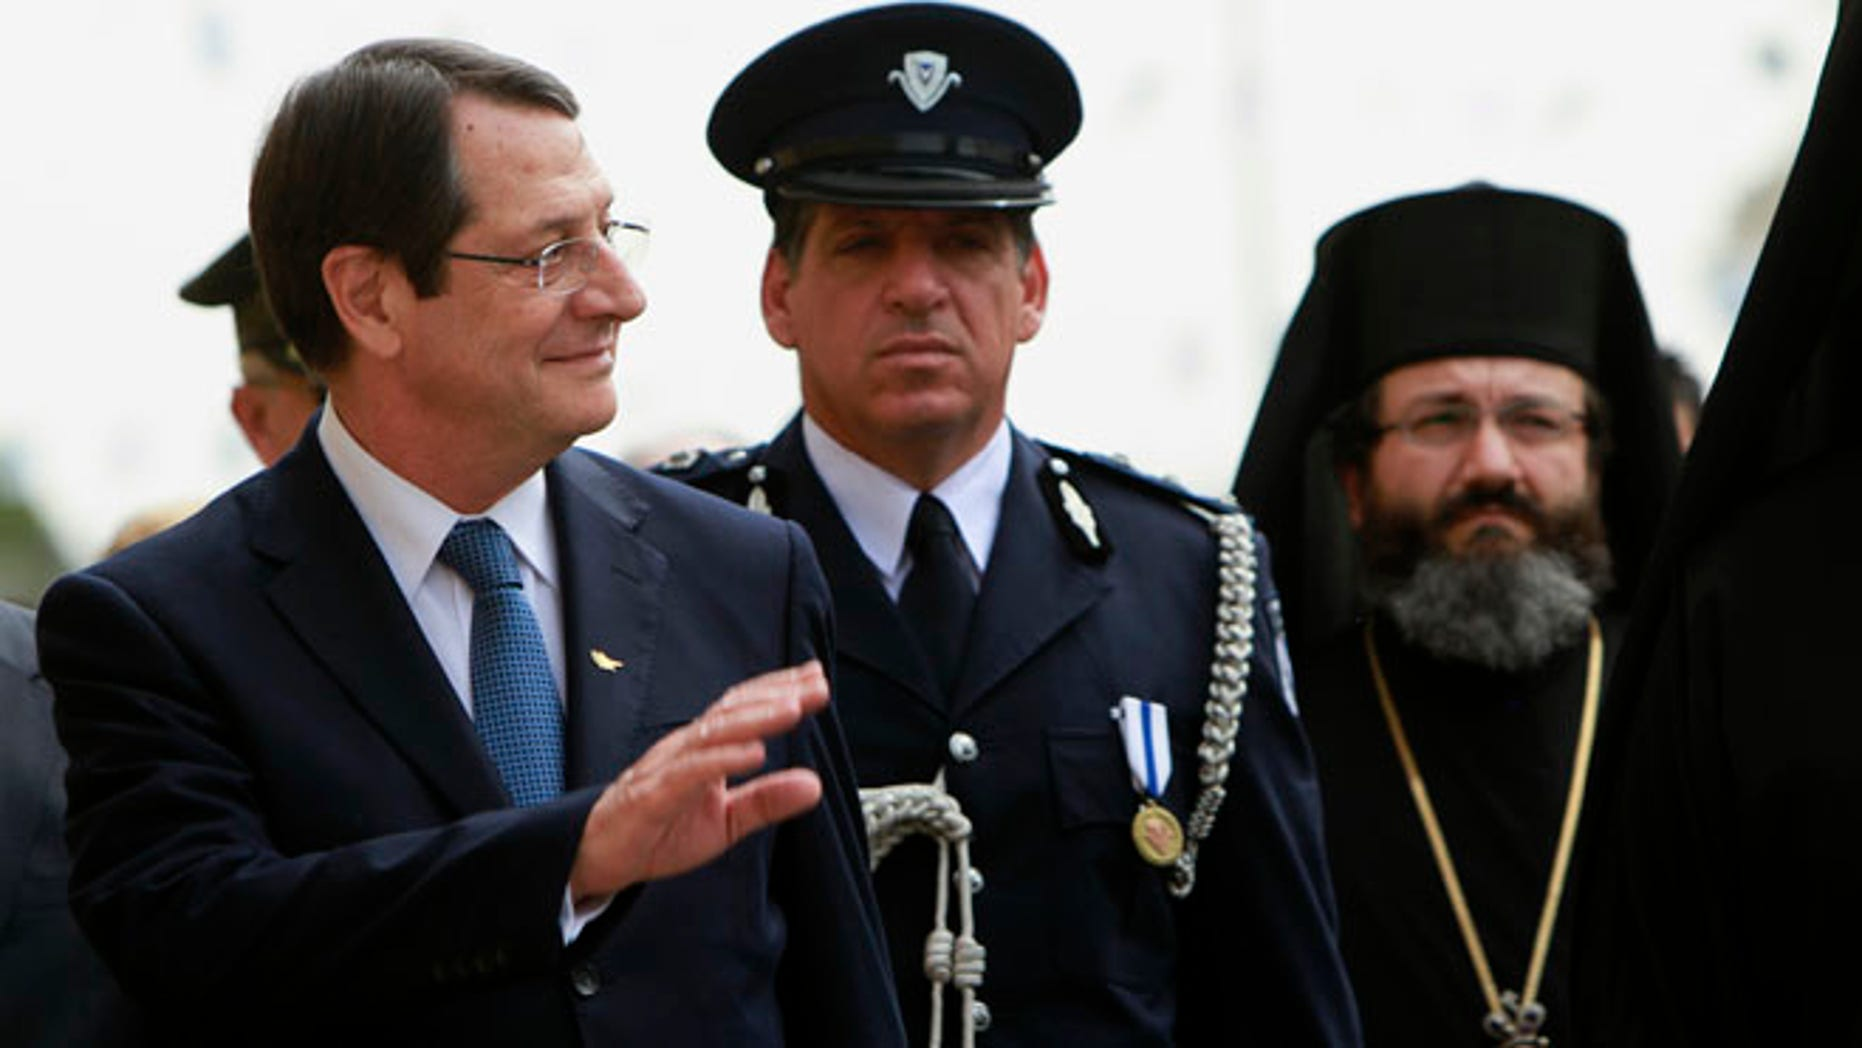 President Nicos Anastasiades pledged to investigate his own family after media allegations that a company partly owned by an in-law had yanked millions of euros out of the country days before the crisis began.